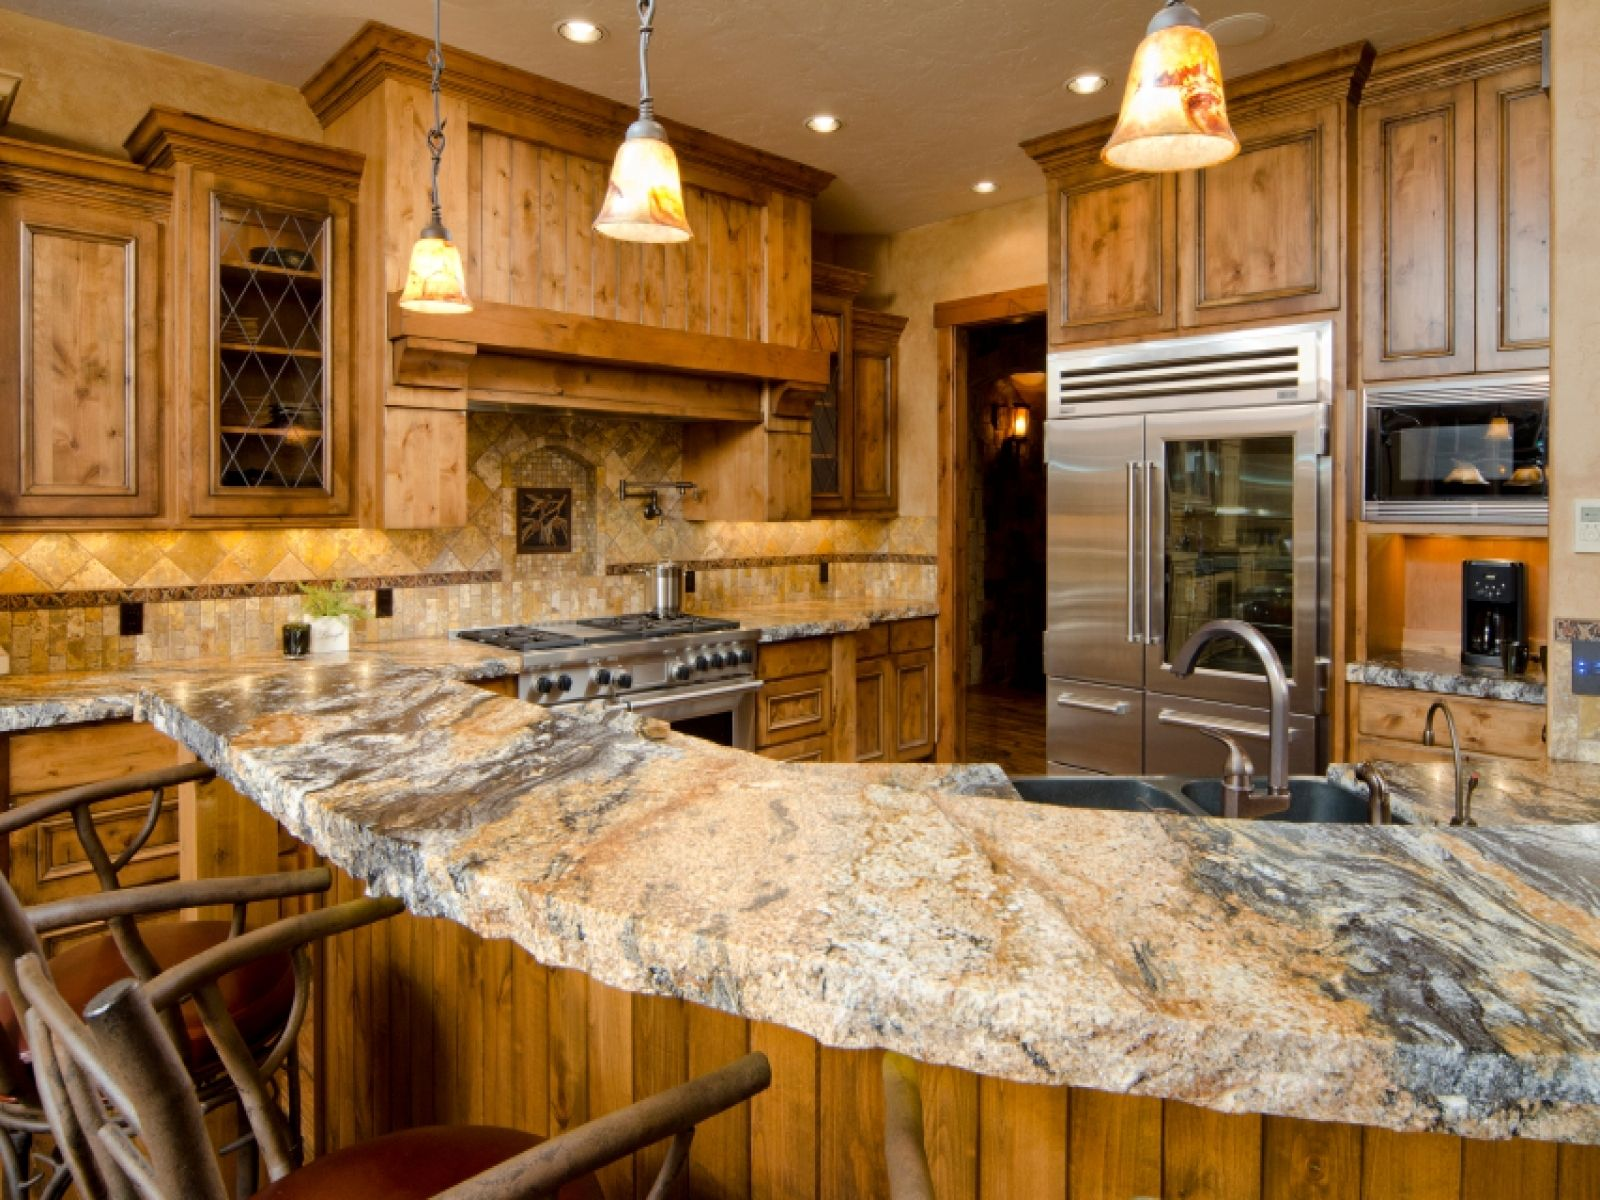 Decorating with oak cabinets kitchen countertops pics picture of granite countertops in kitchens tuscan look